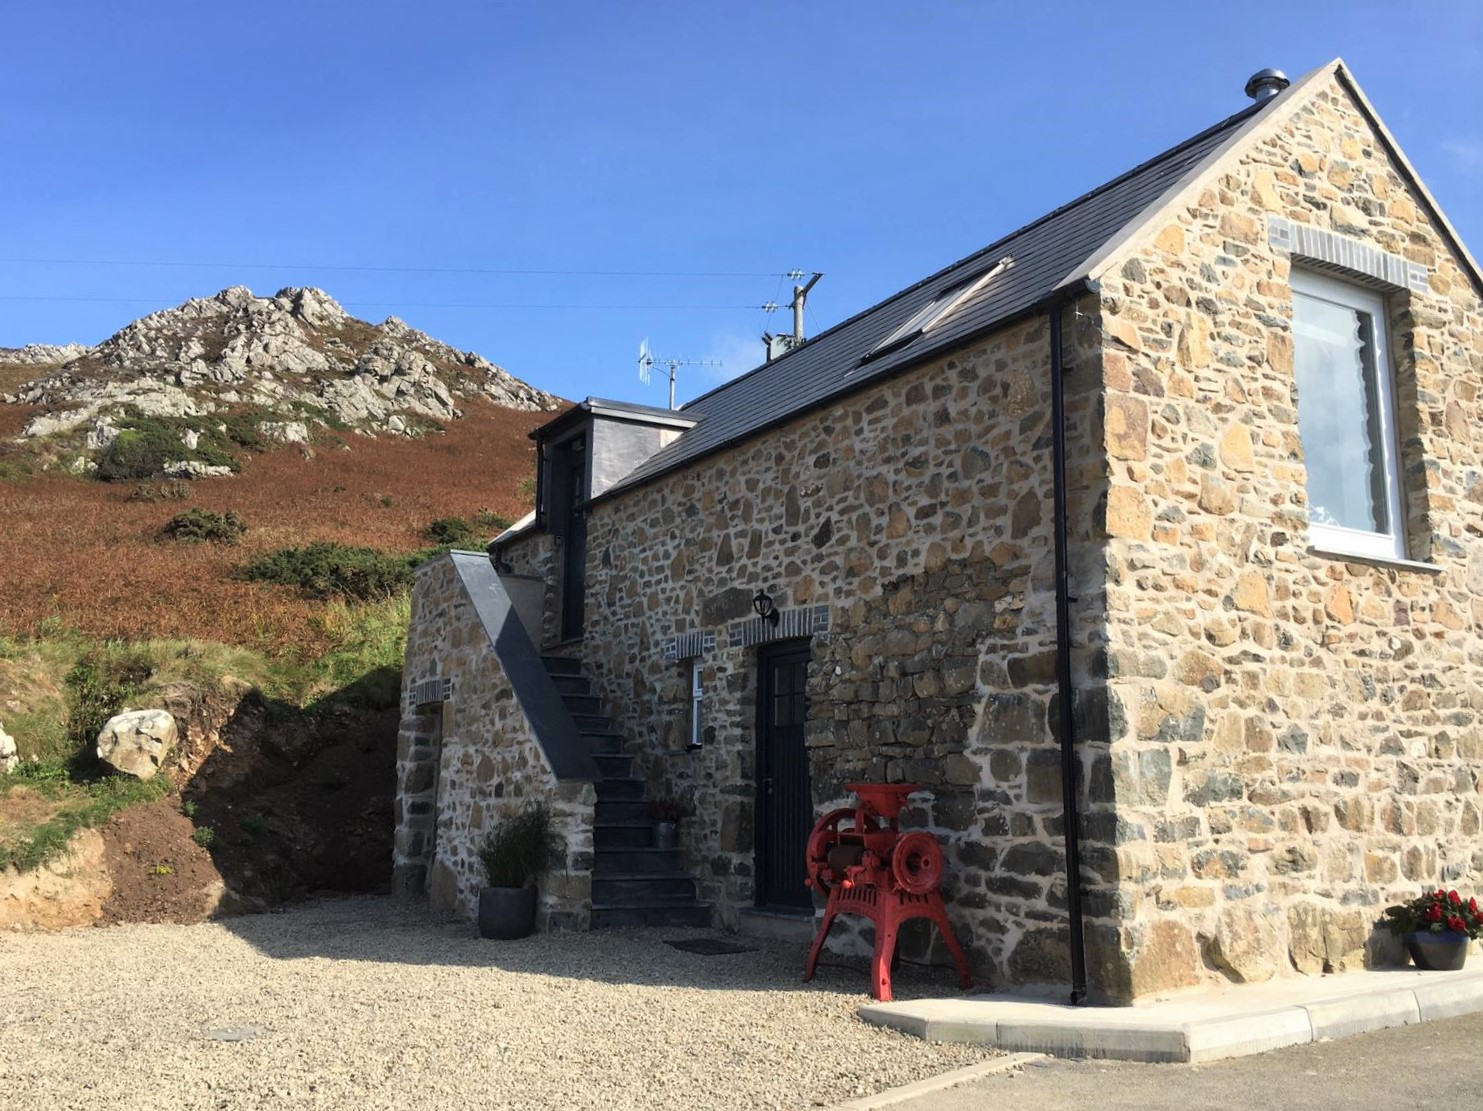 Beautiful converted barn in the Pembrokeshire Coast National Park. Stunning views and surroundings make this a spectacular location to enjoy the unspoilt West Wales coastline.